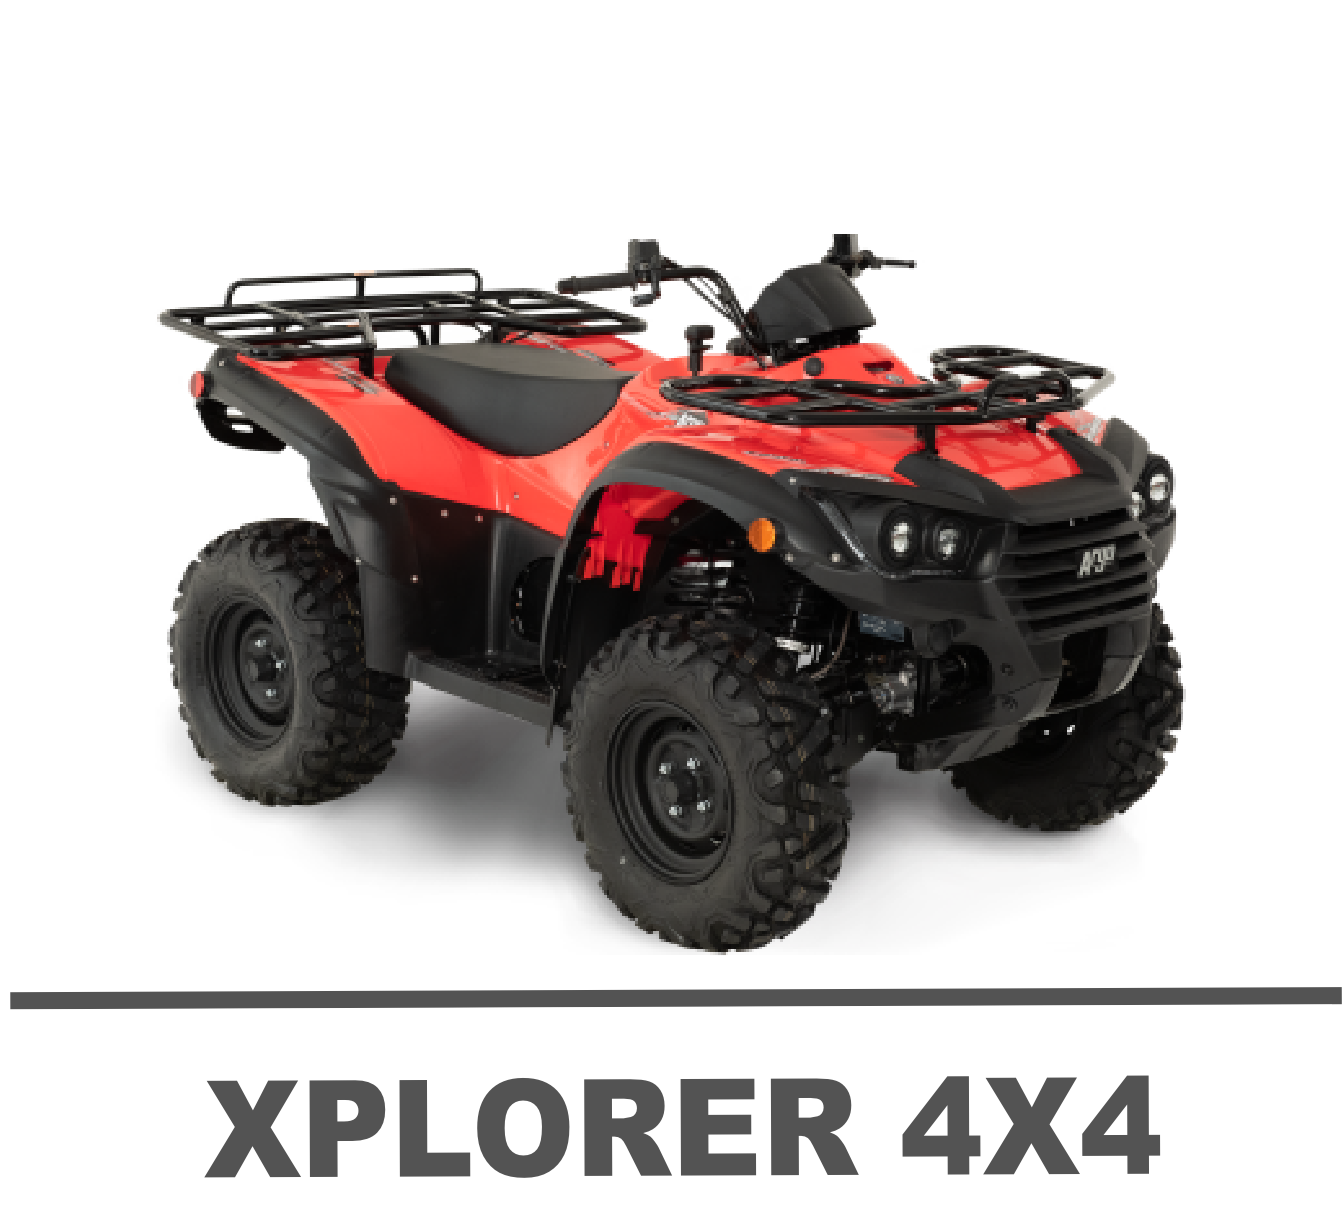 ARGO XPLORER ACCESSORY MANUALS